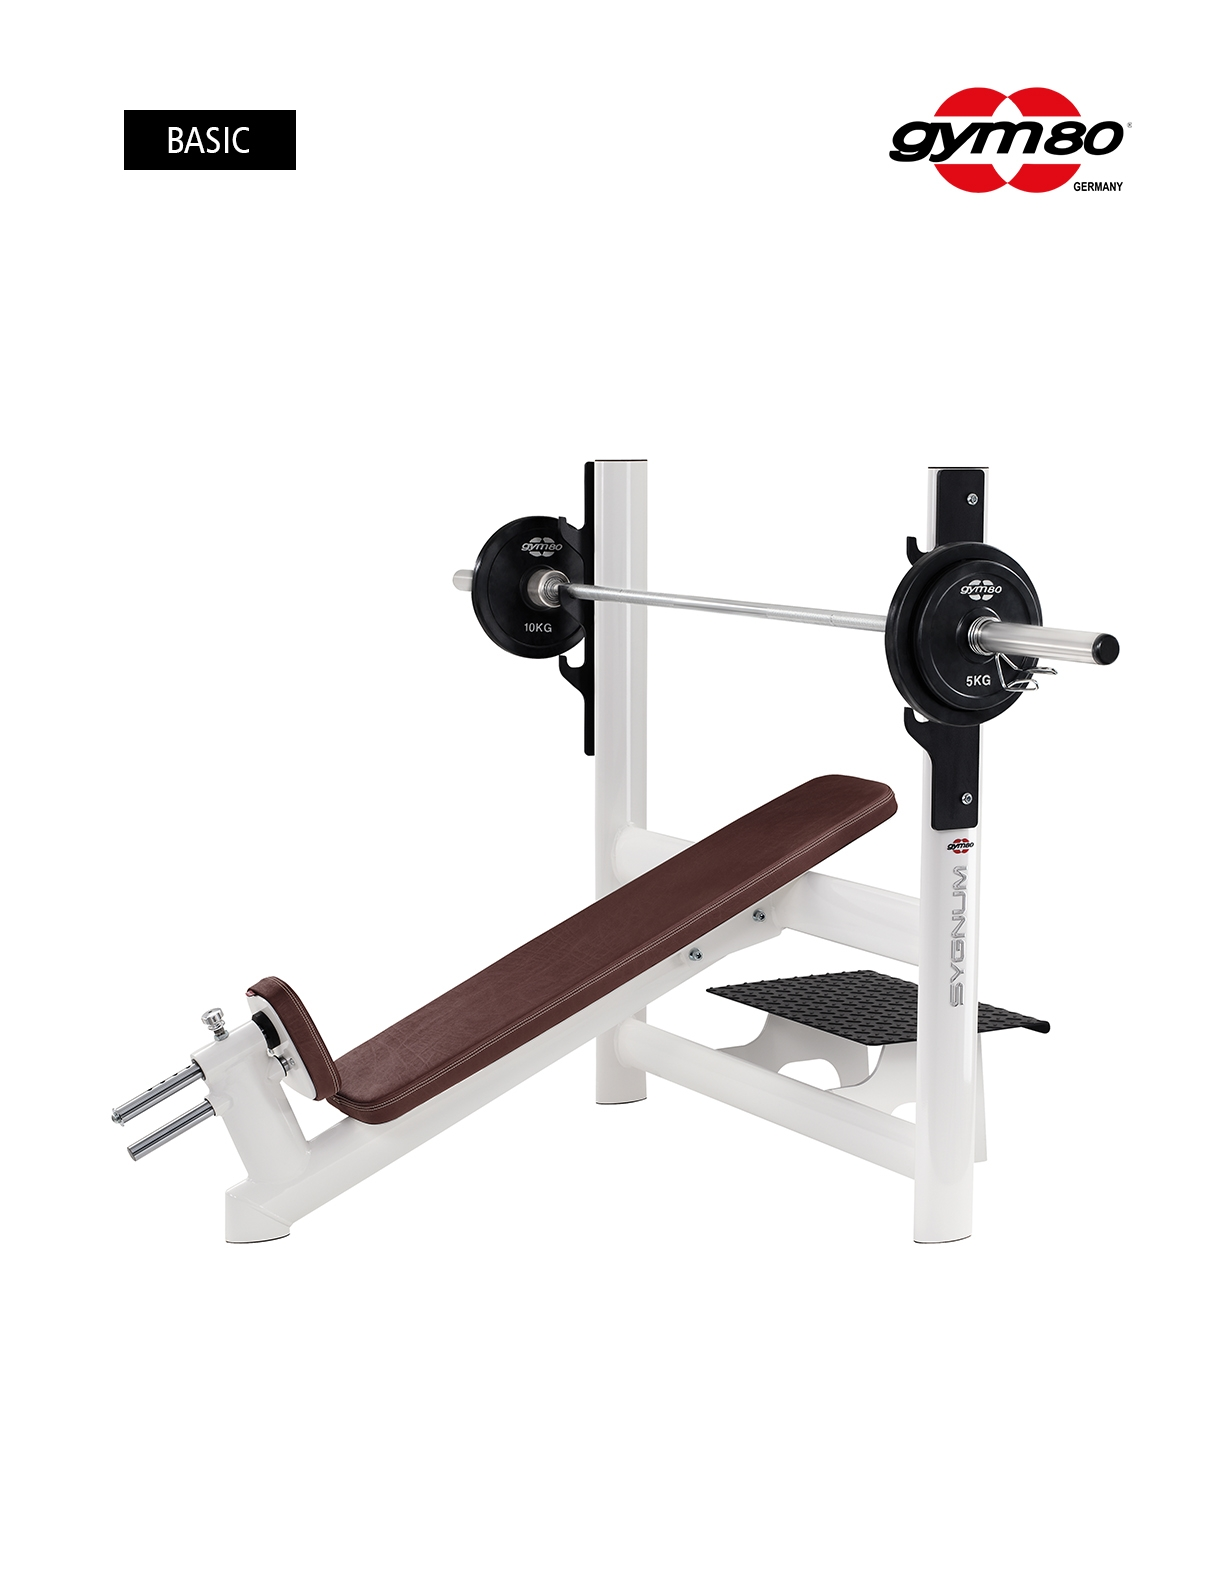 WIDE INCLINE BENCH